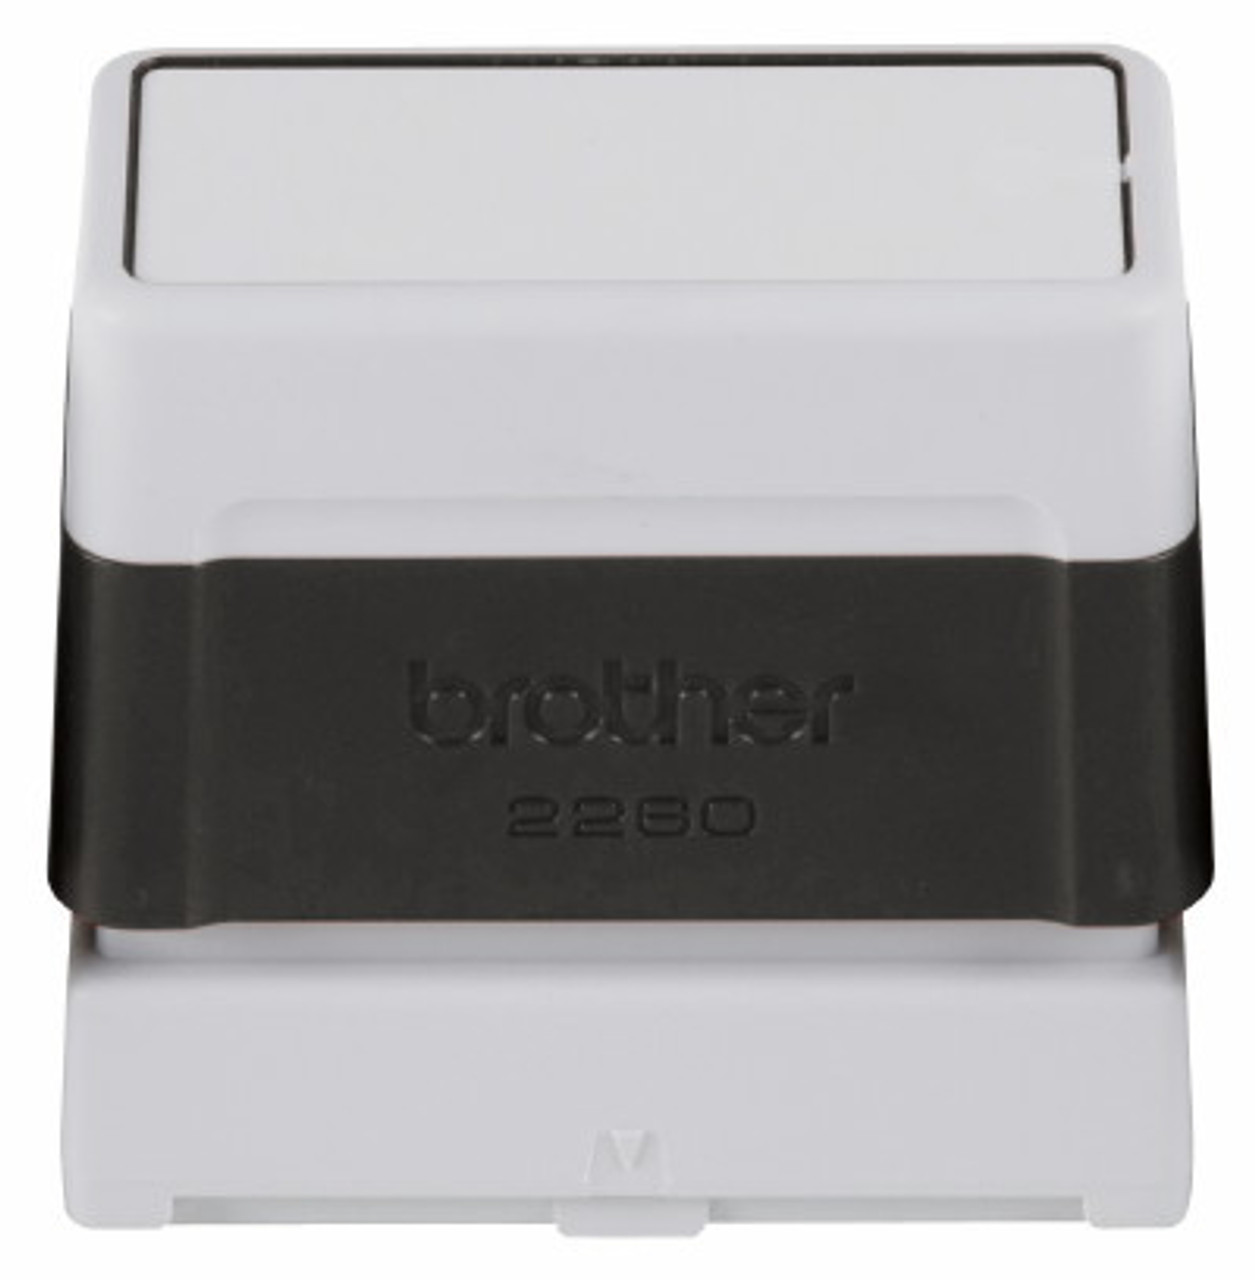 22 x 60 mm Brother PR2260B Black Rubber Stamps .86 x 2.35 Box//6 for use in SC2000 StampCreator